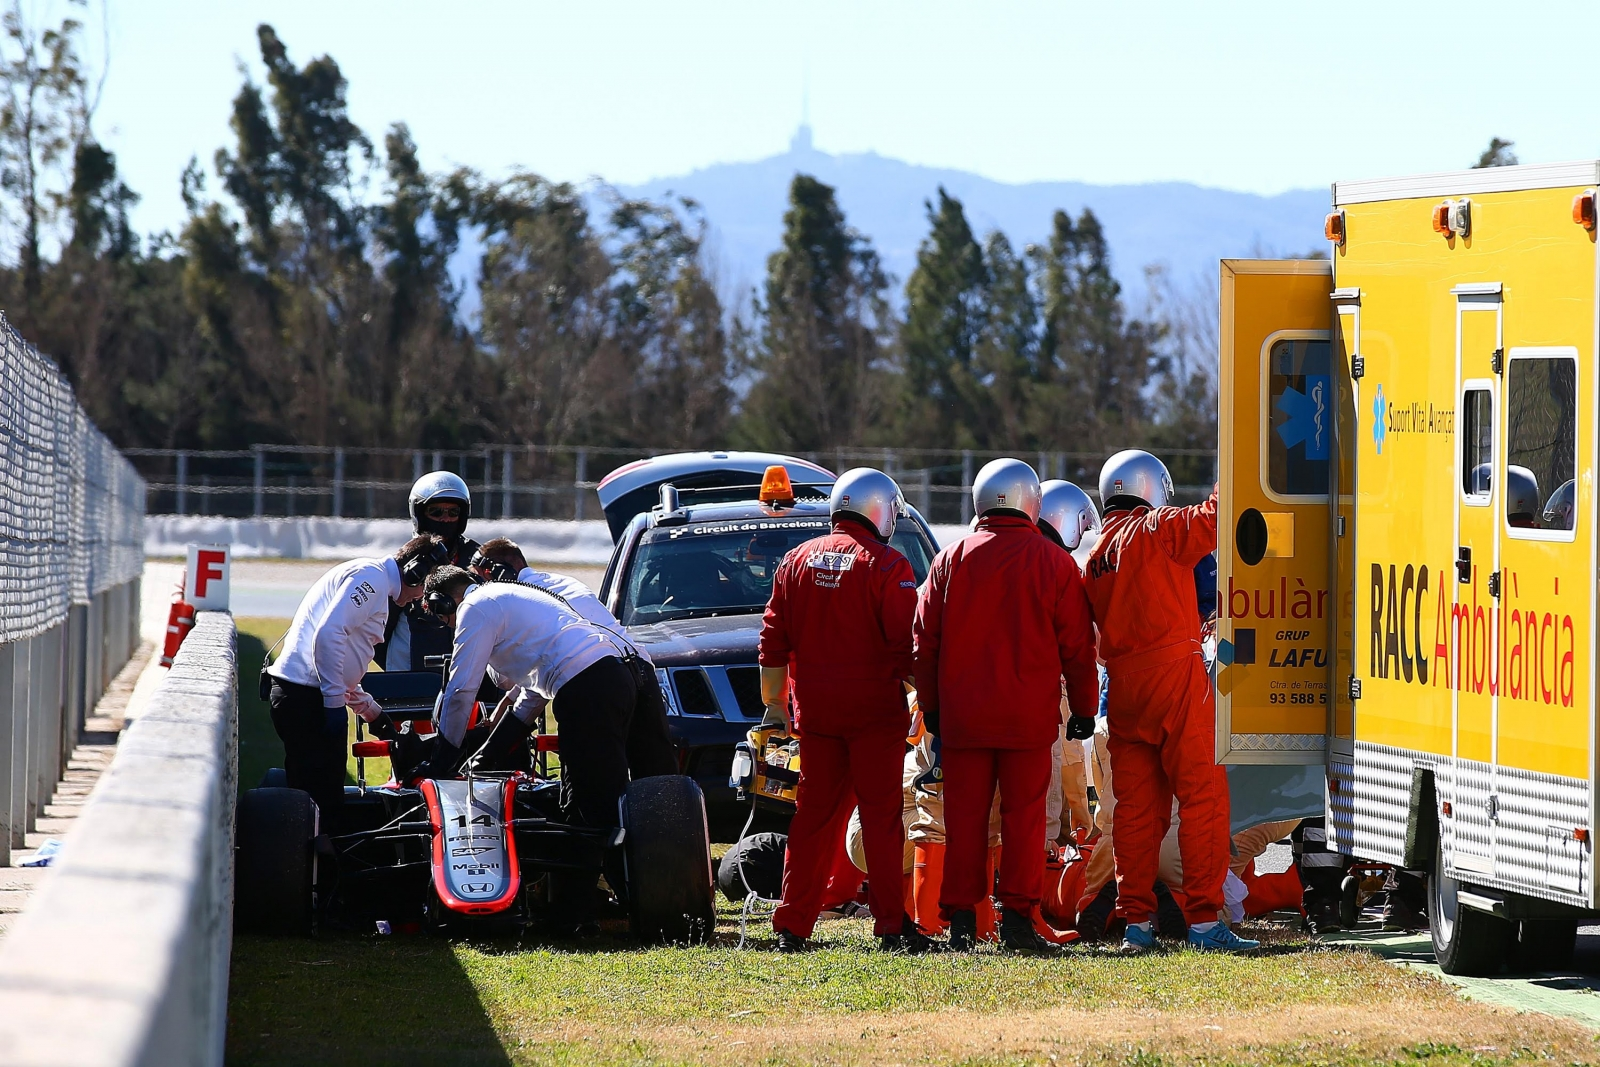 Fernando Alonso to undergo more tests after crash causes concussion